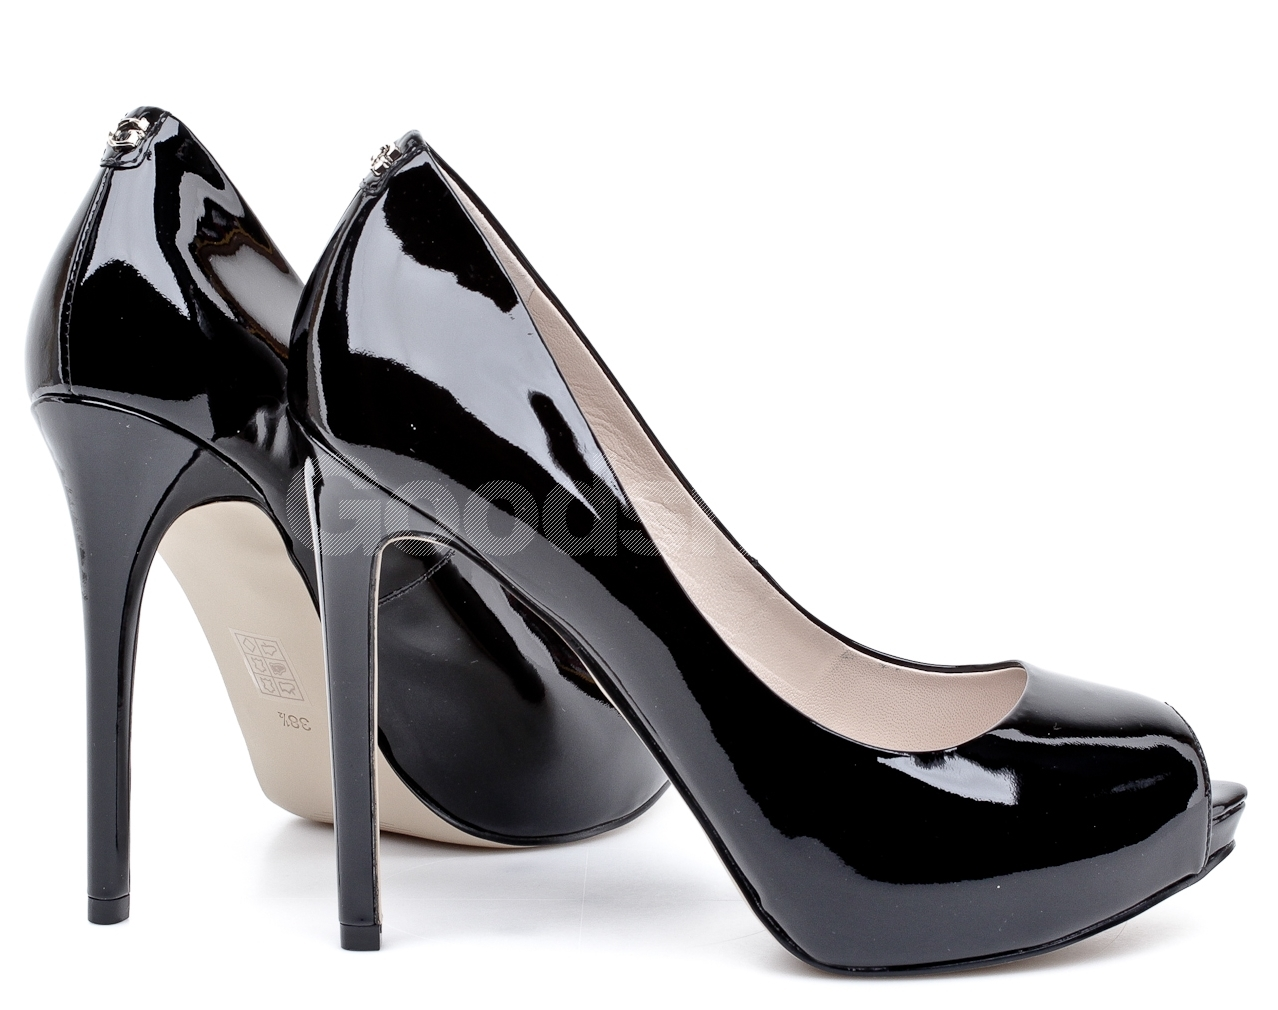 Guess Shoes Black Patent Leather